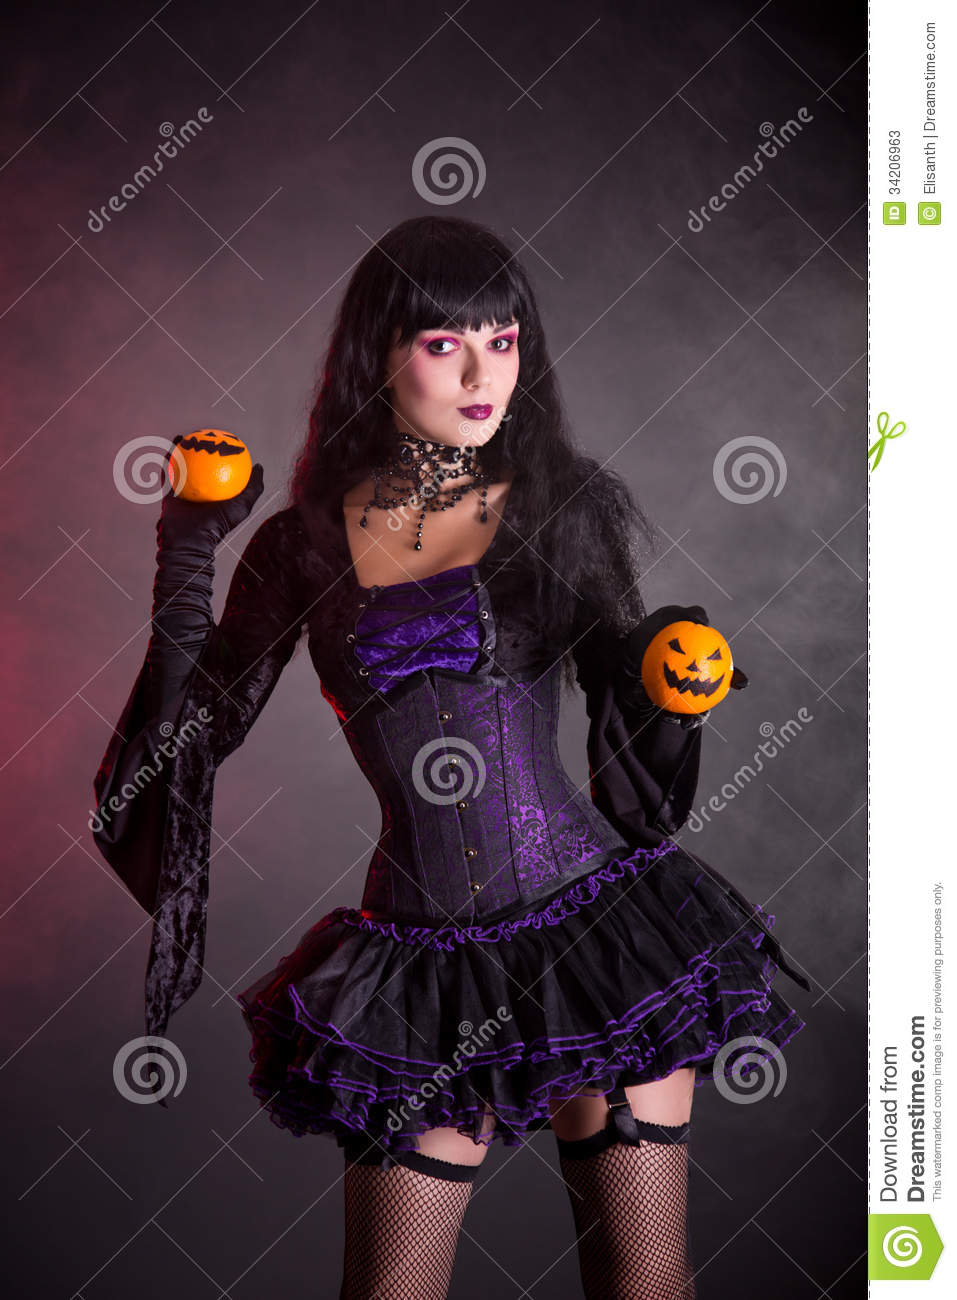 Black dress up gloves - Smiling Witch In Purple Gothic Halloween Costume Stock